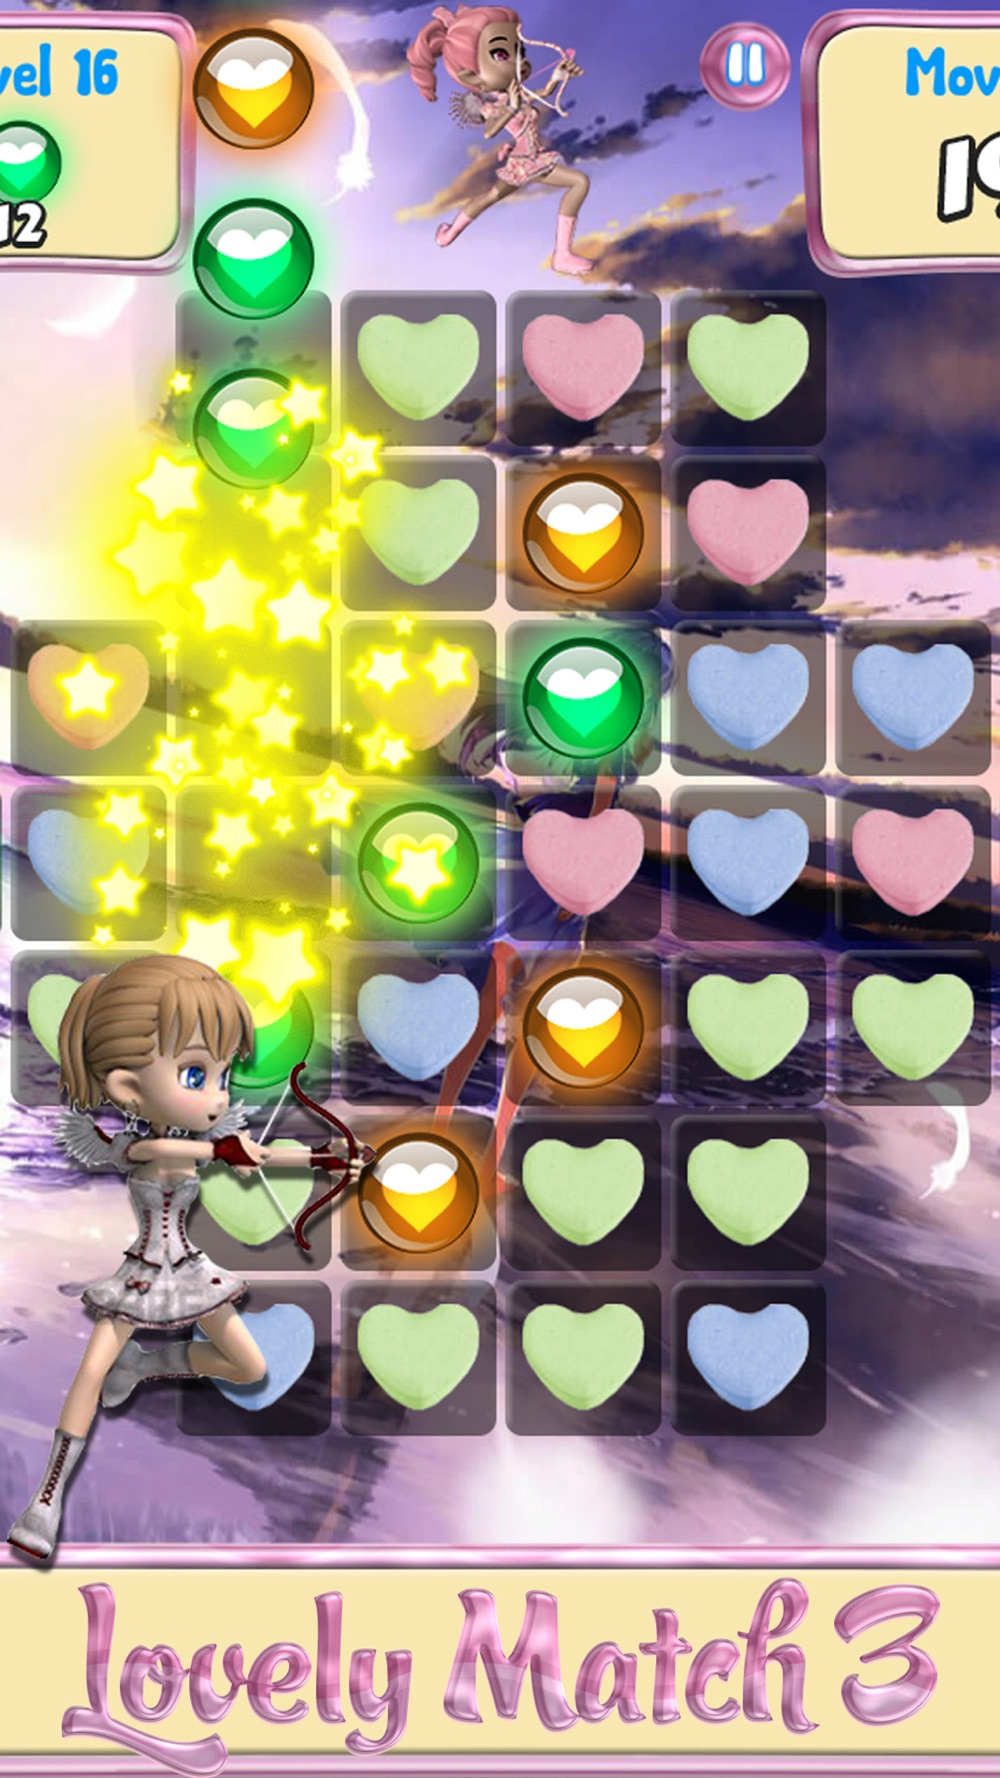 Love Girl Story – Match candy hearts for a splash of sugar Cheat Codes